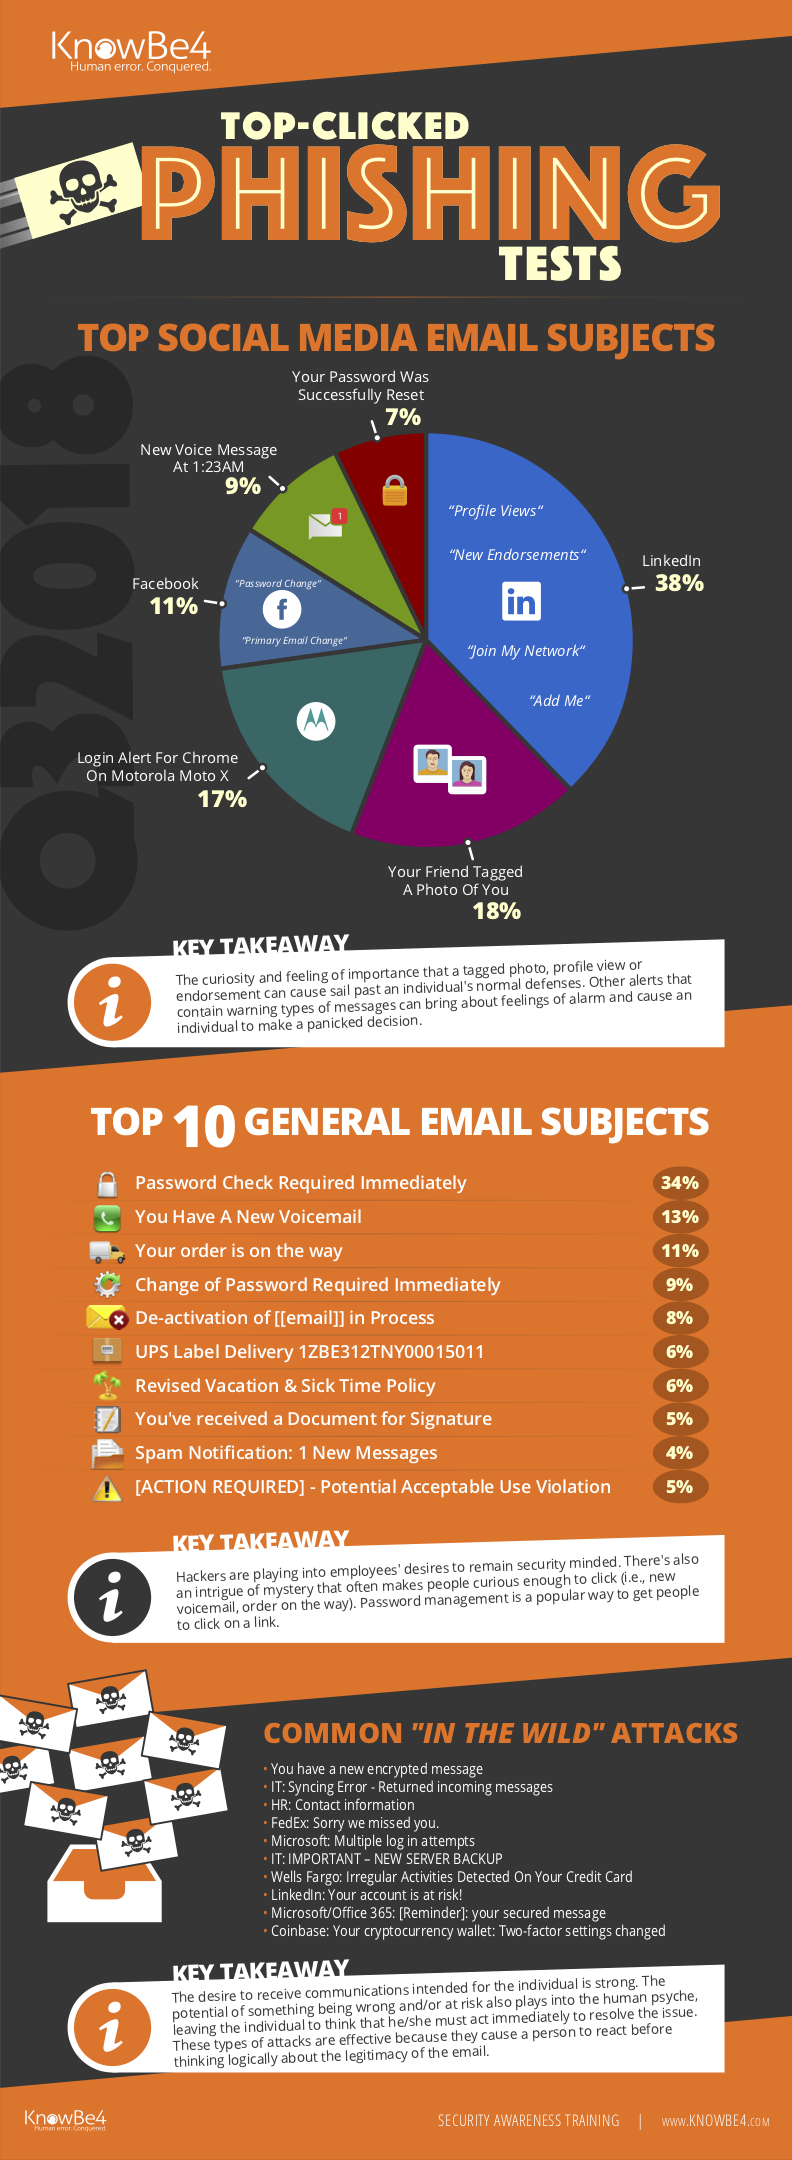 Q32018  - Q32018 - KnowBe4 Top-Clicked Phishing Email Subjects for Q3 2018 [INFOGRAPHIC]